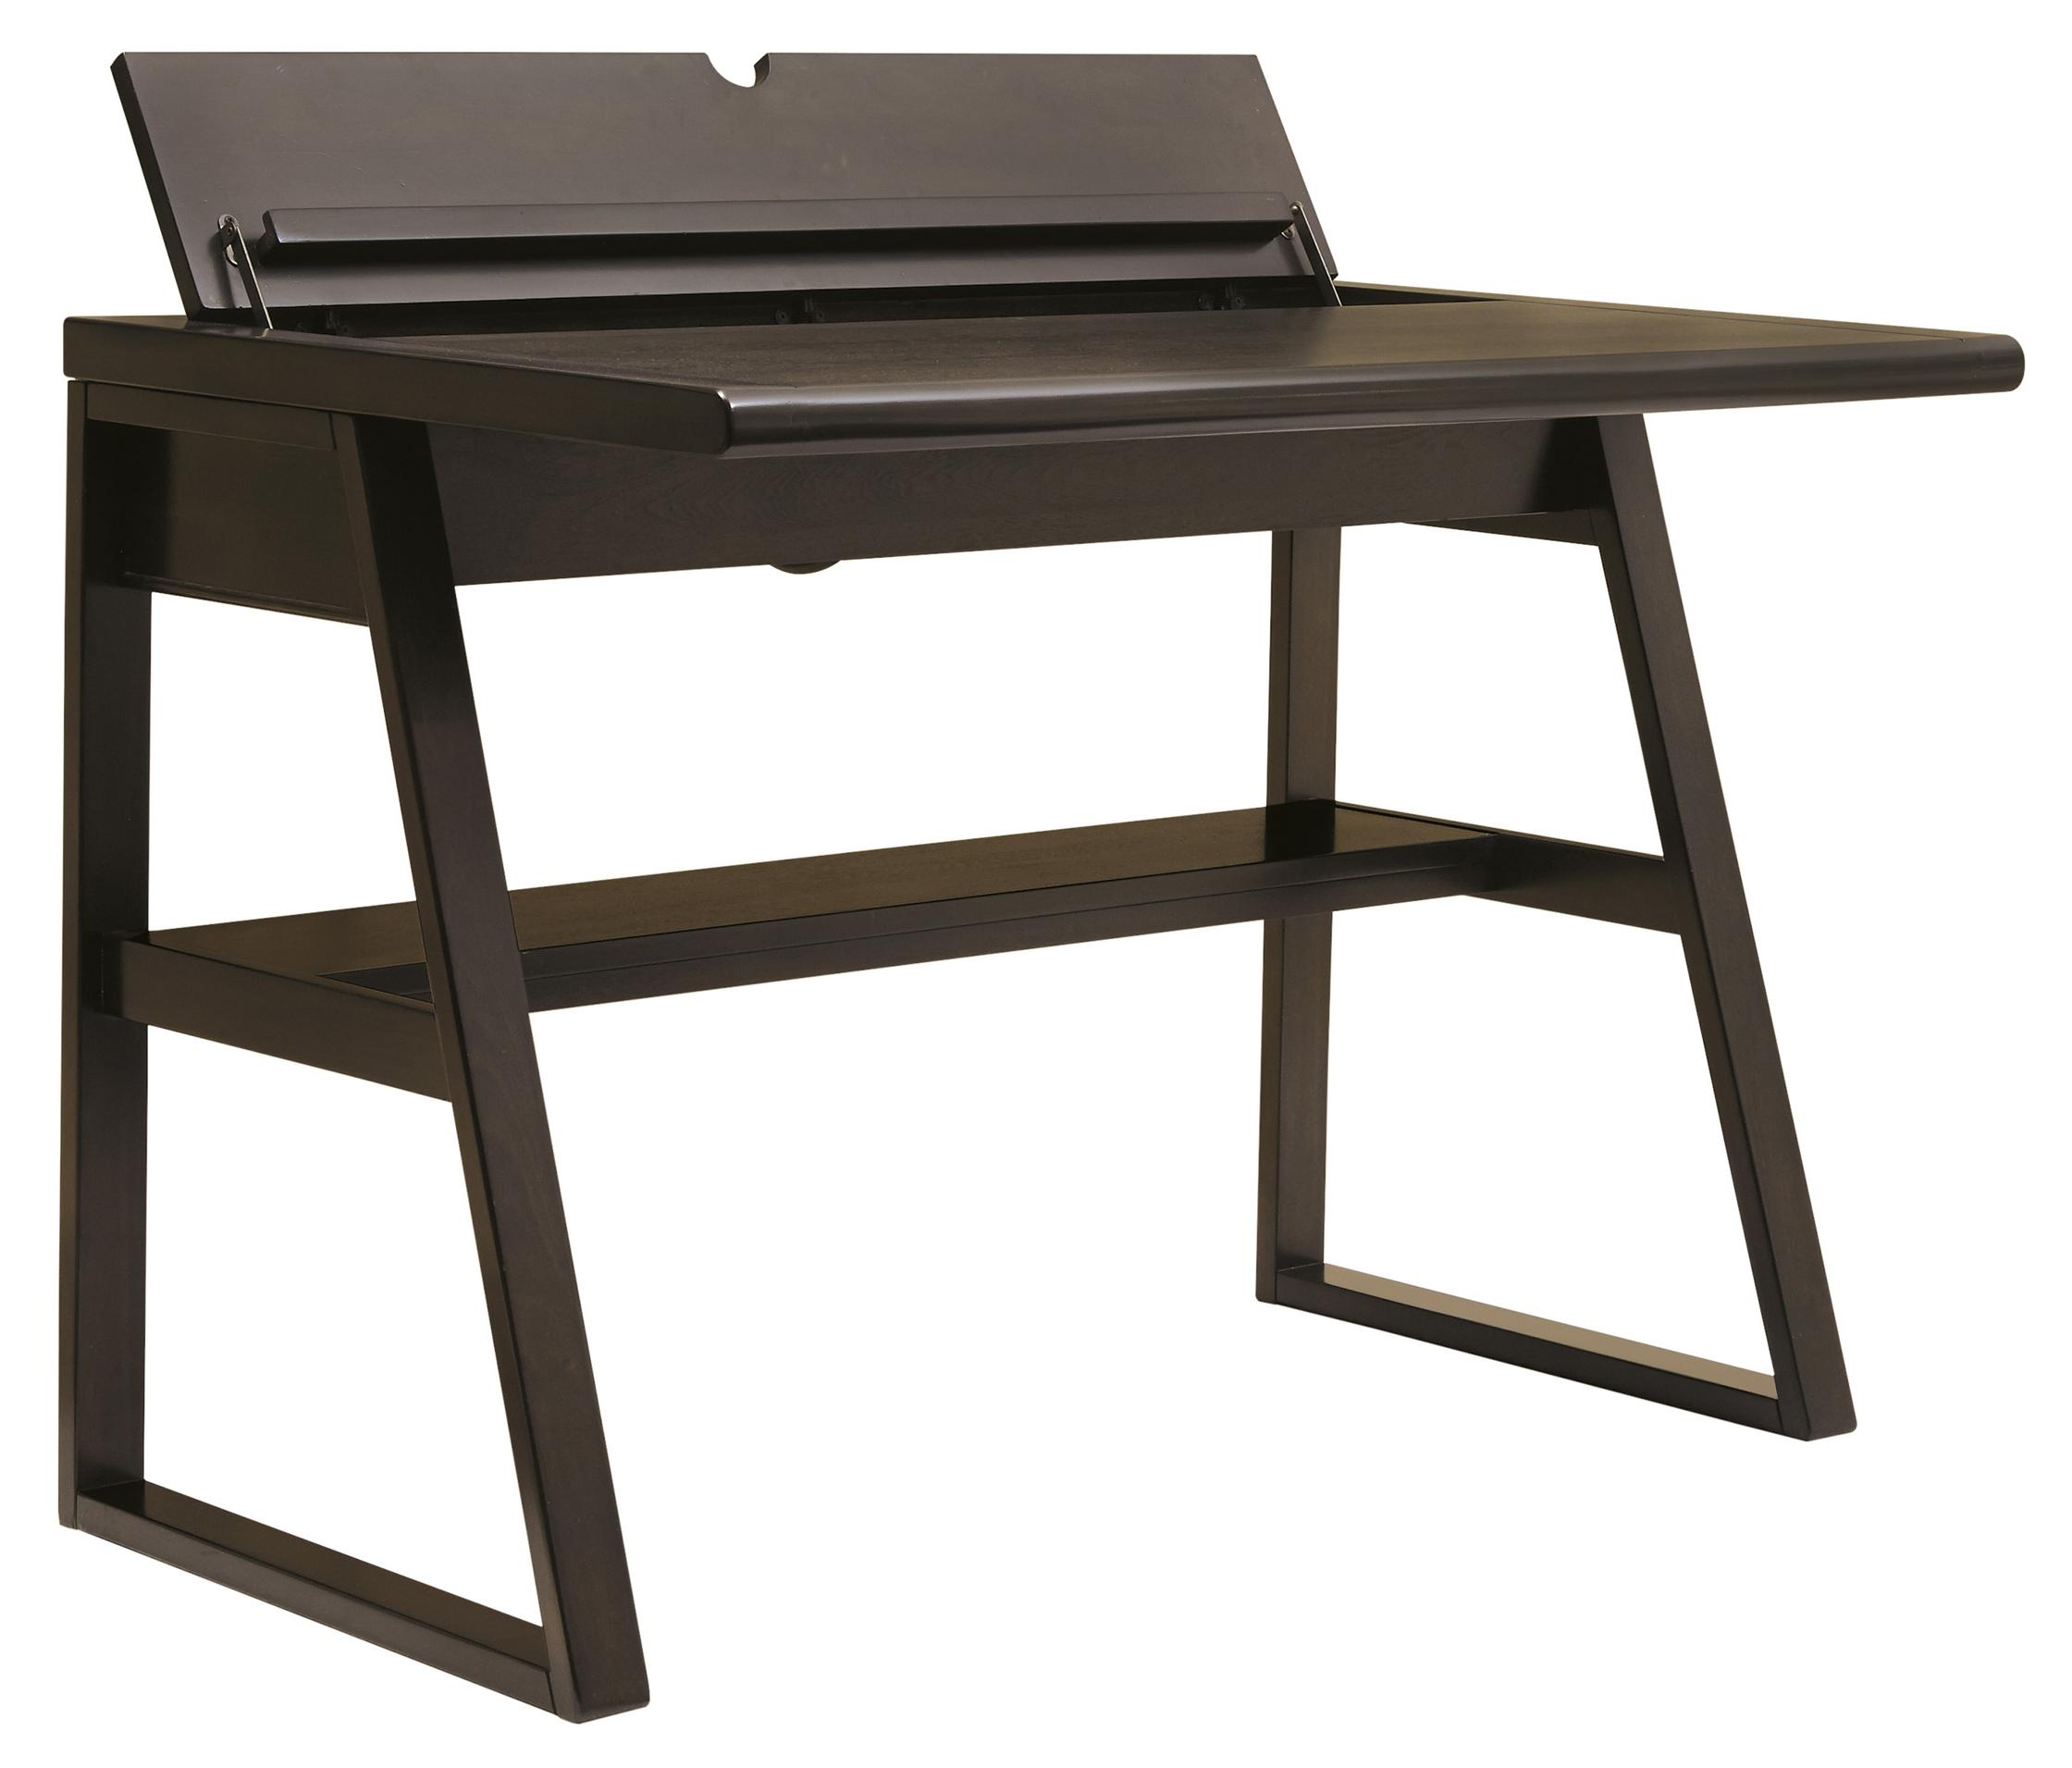 Signature Design by Ashley Chanella Home Office Desk - Item Number: H582-10